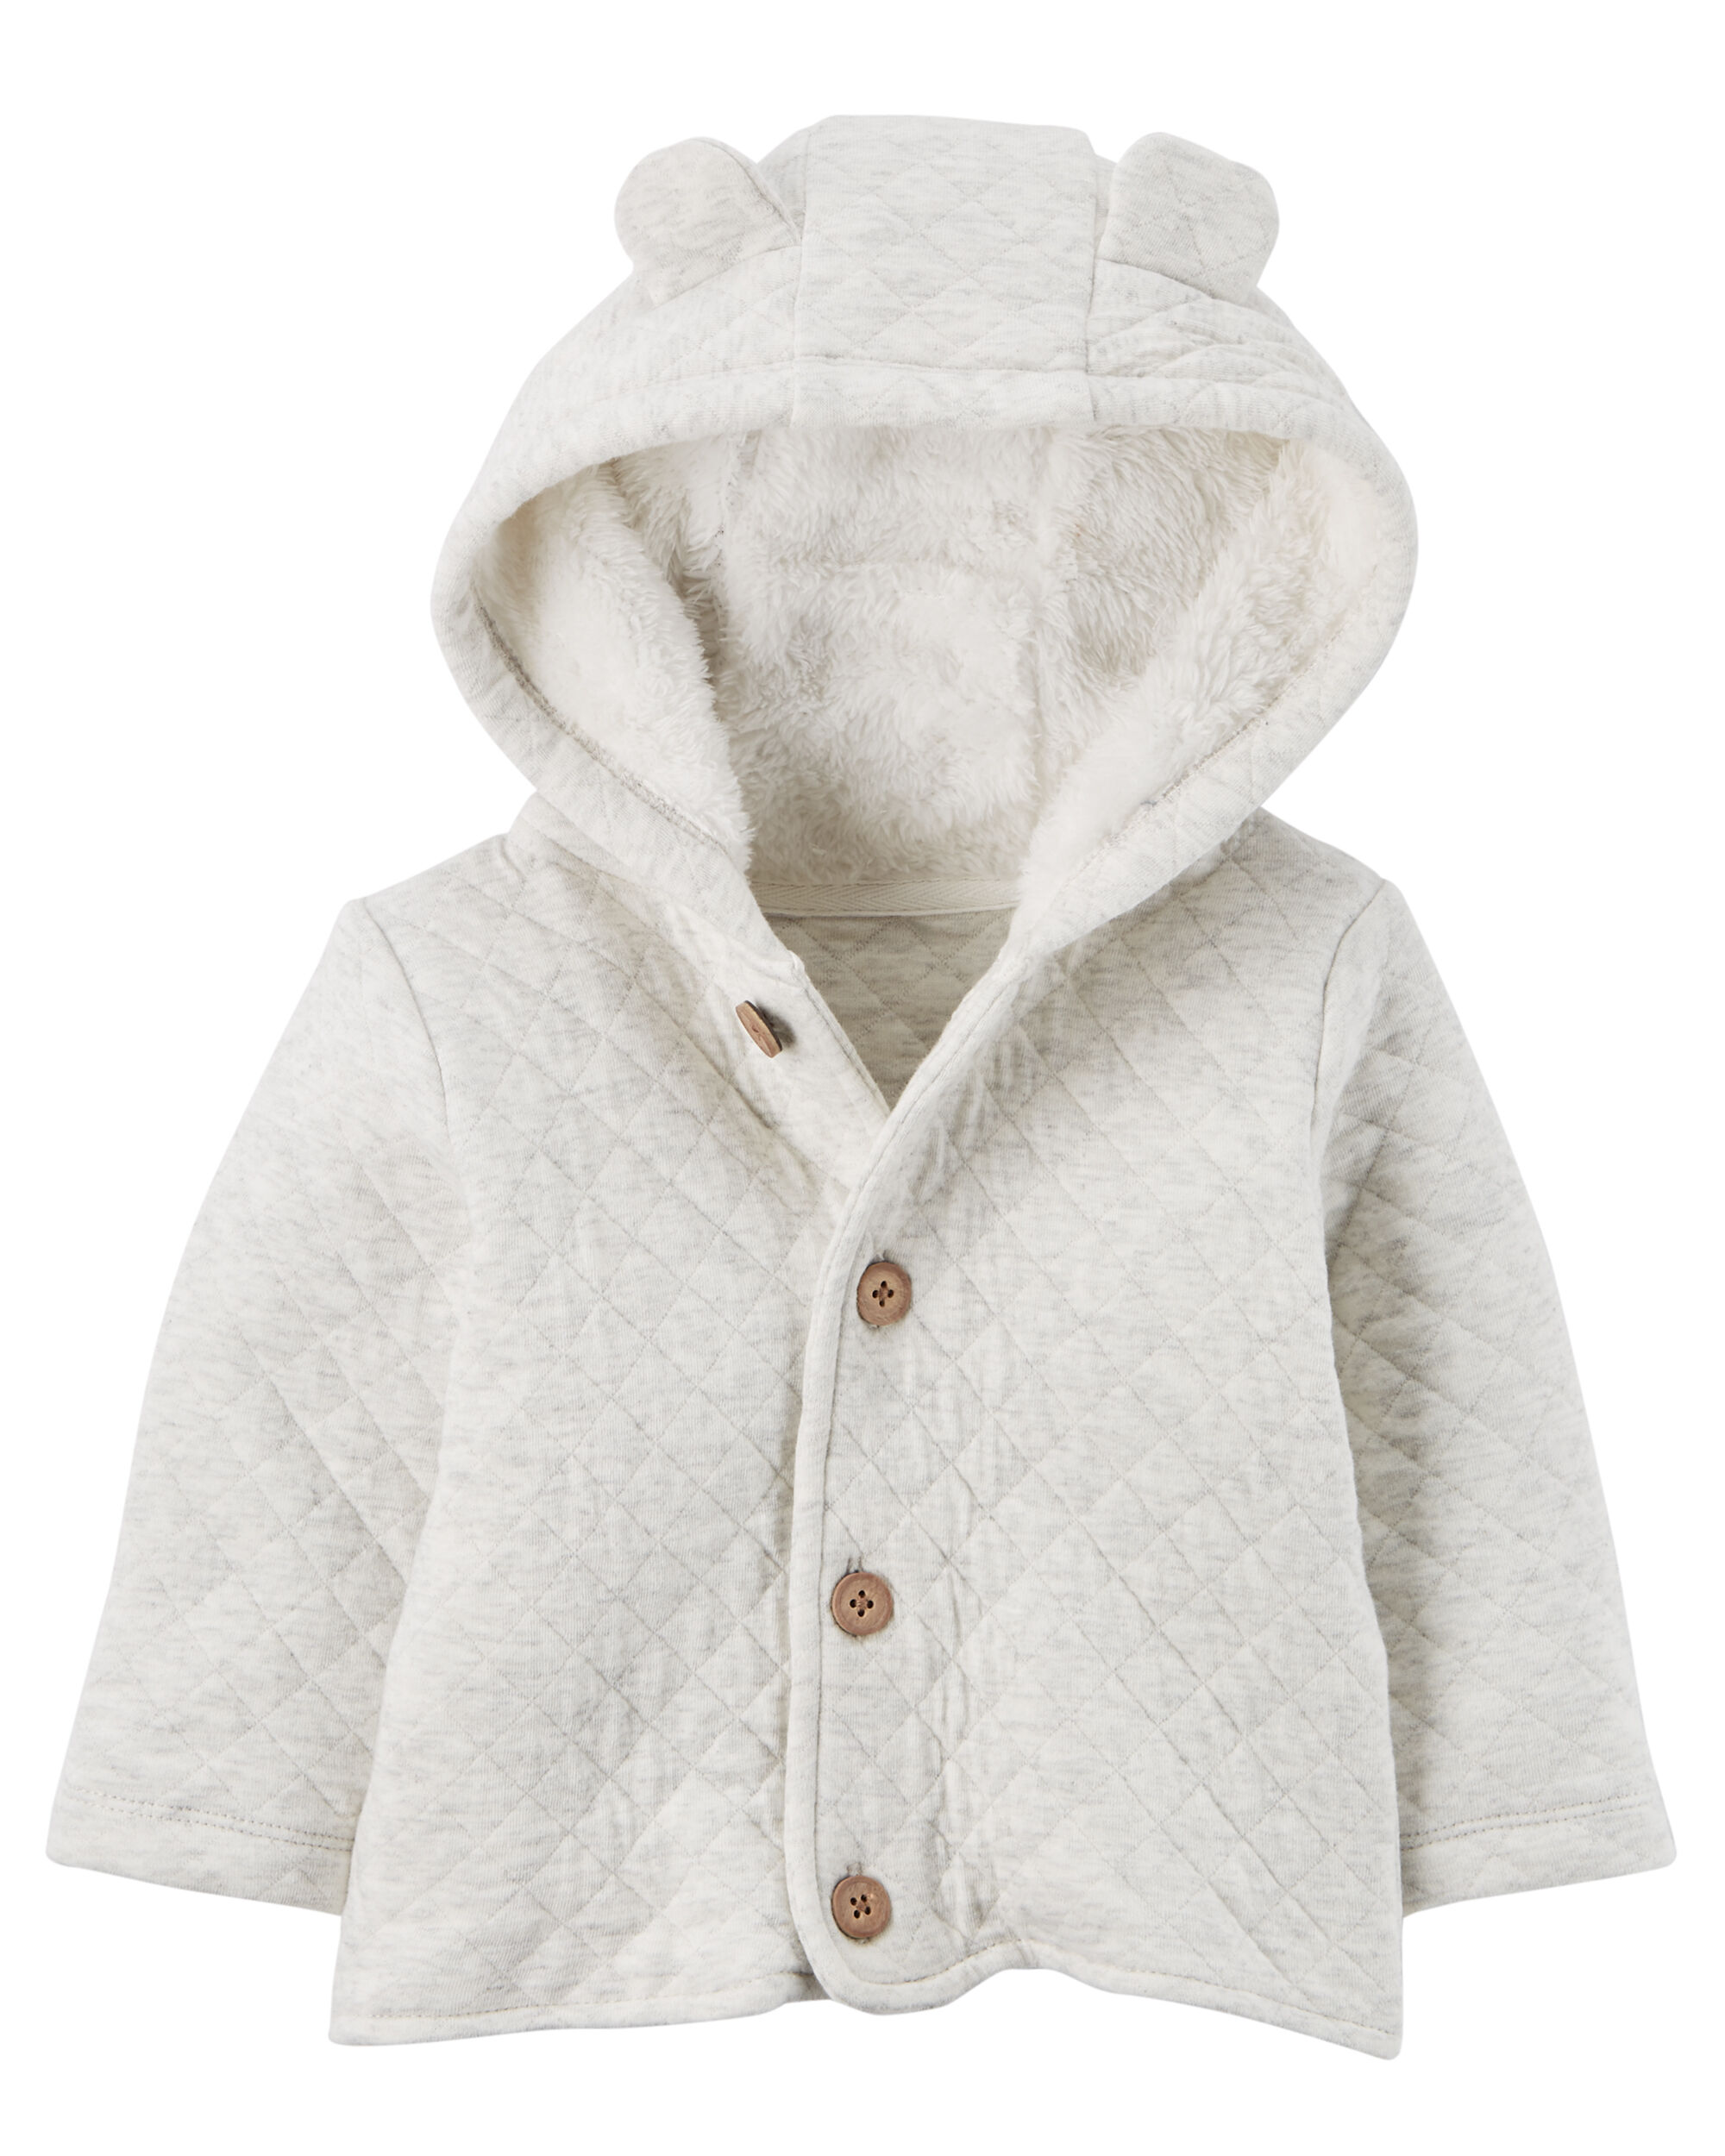 Sherpa-Lined Quilted Cardigan | Carters.com : quilted cardigan - Adamdwight.com